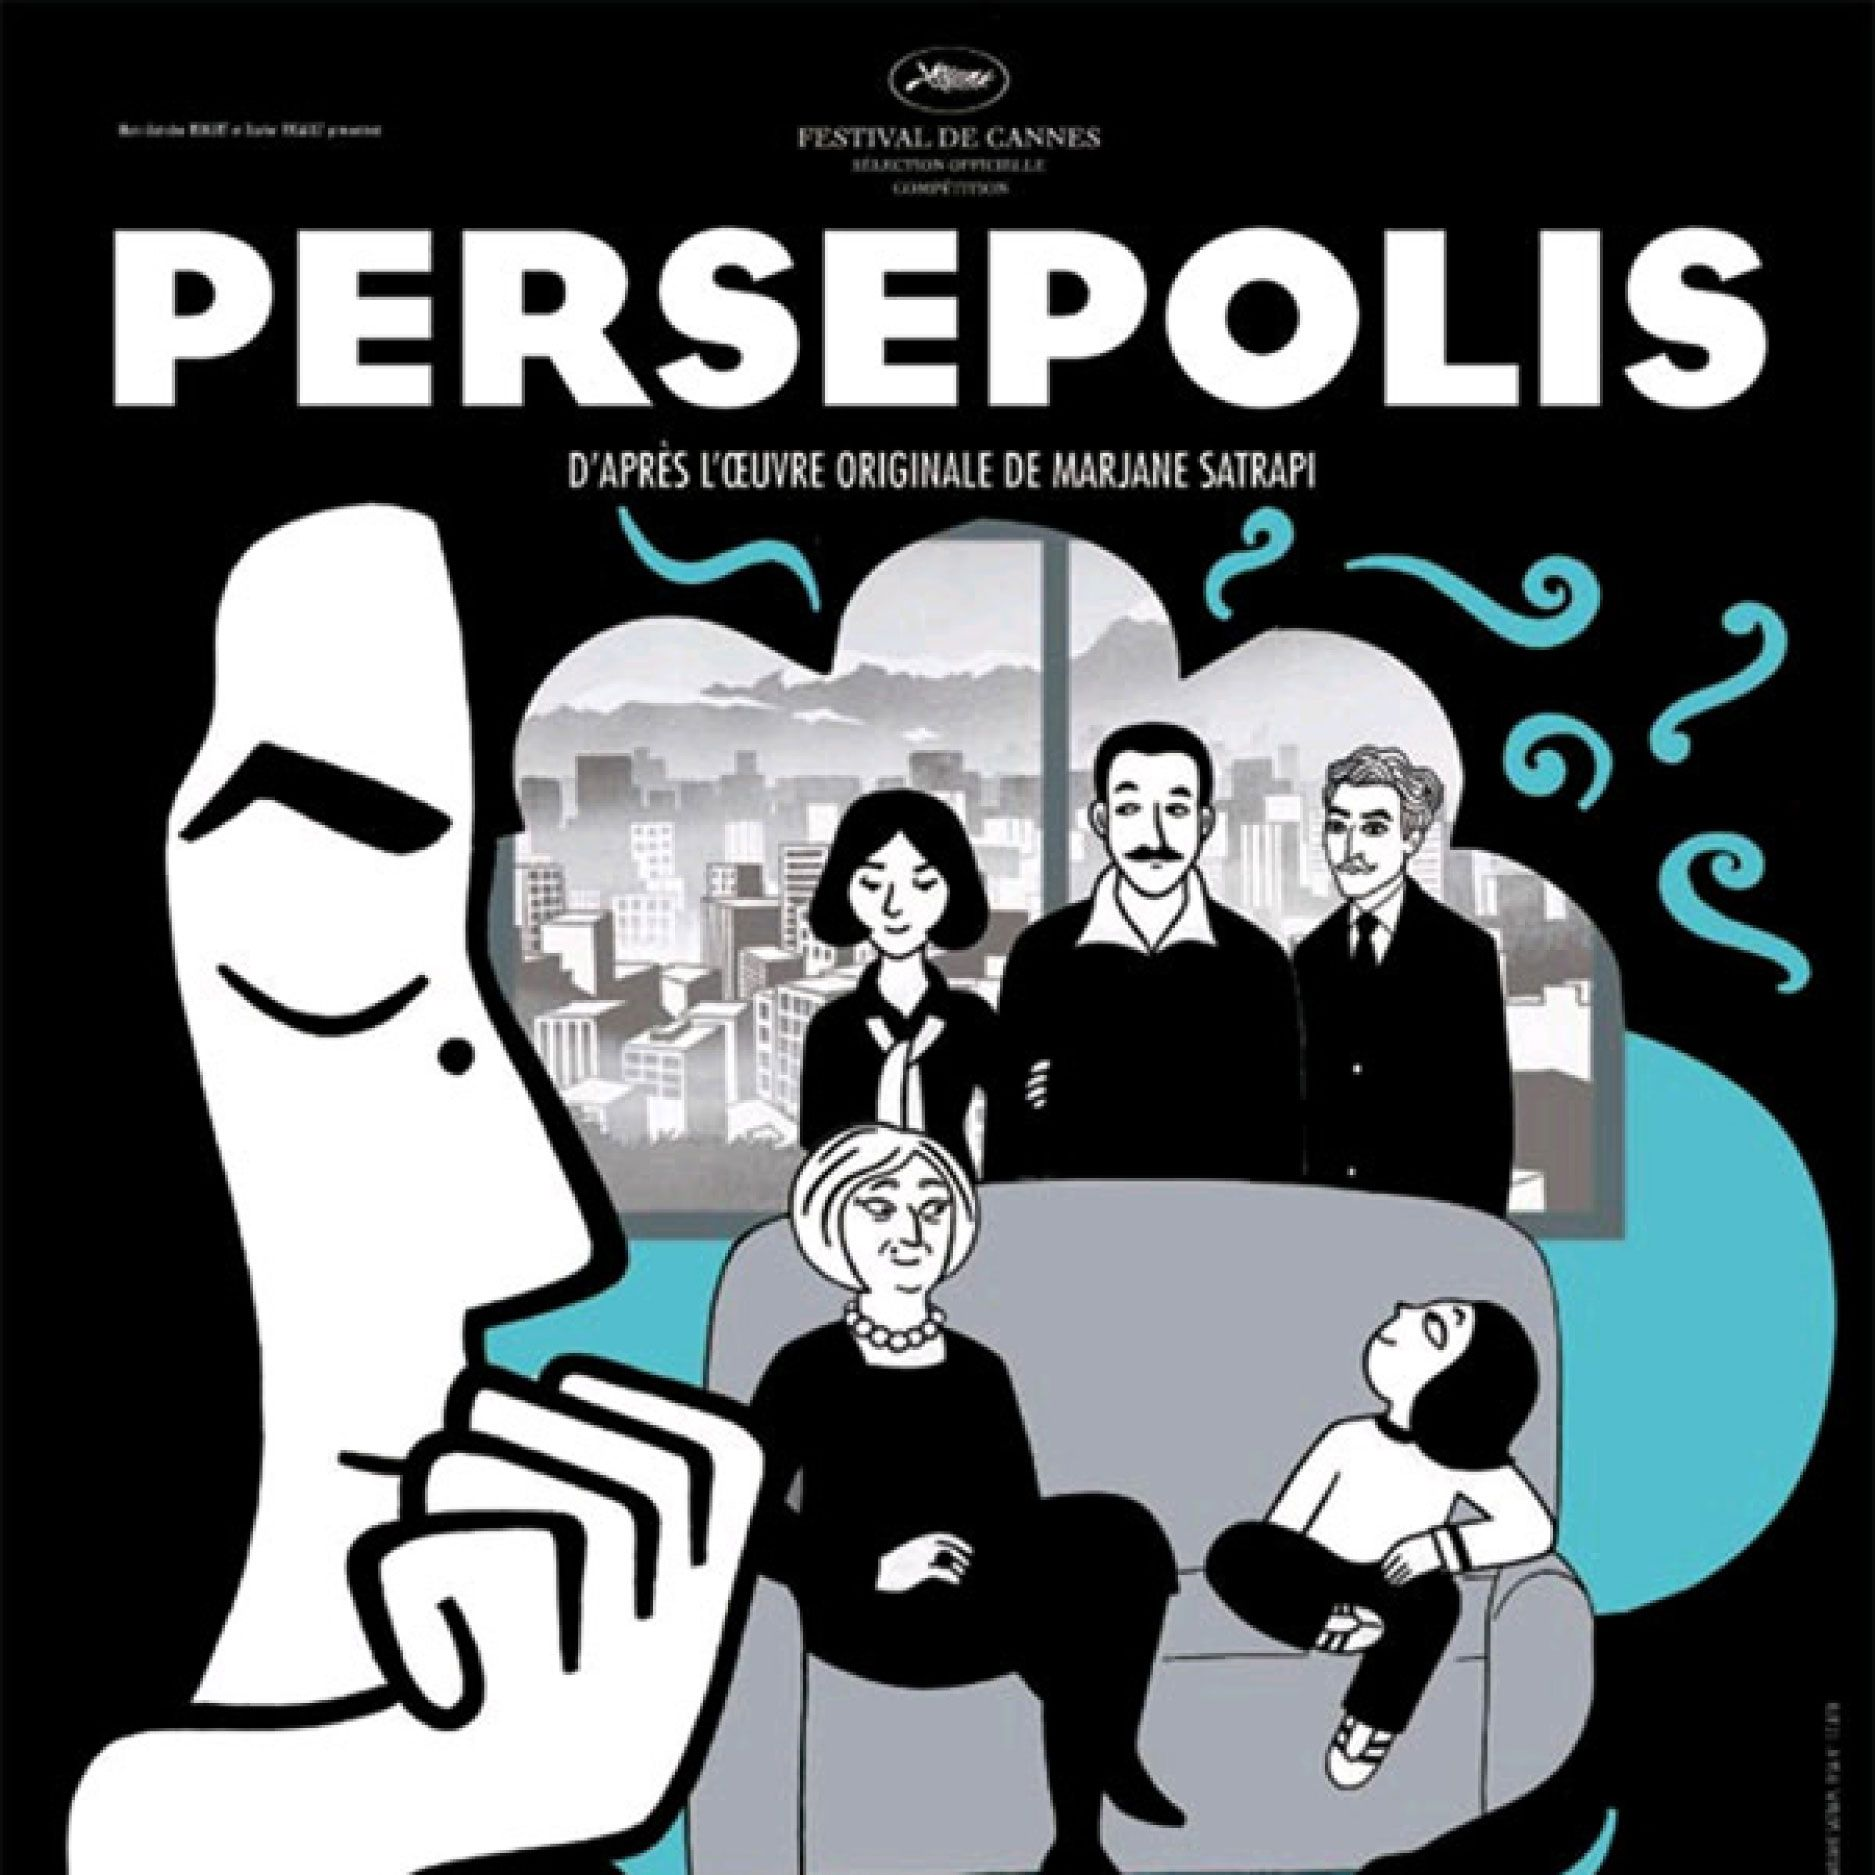 This French-Iranian-American, Oscar-nominated animated film was based on Marjane Satrapi's autobiographical novel of the same name. It follows a girl as she comes of age during the Iranian Revolution. Because if its critical lens, the Iranian government released complaints, it was initially banned in Lebanon, and it was dropped from the Bangkok International Film Festival.